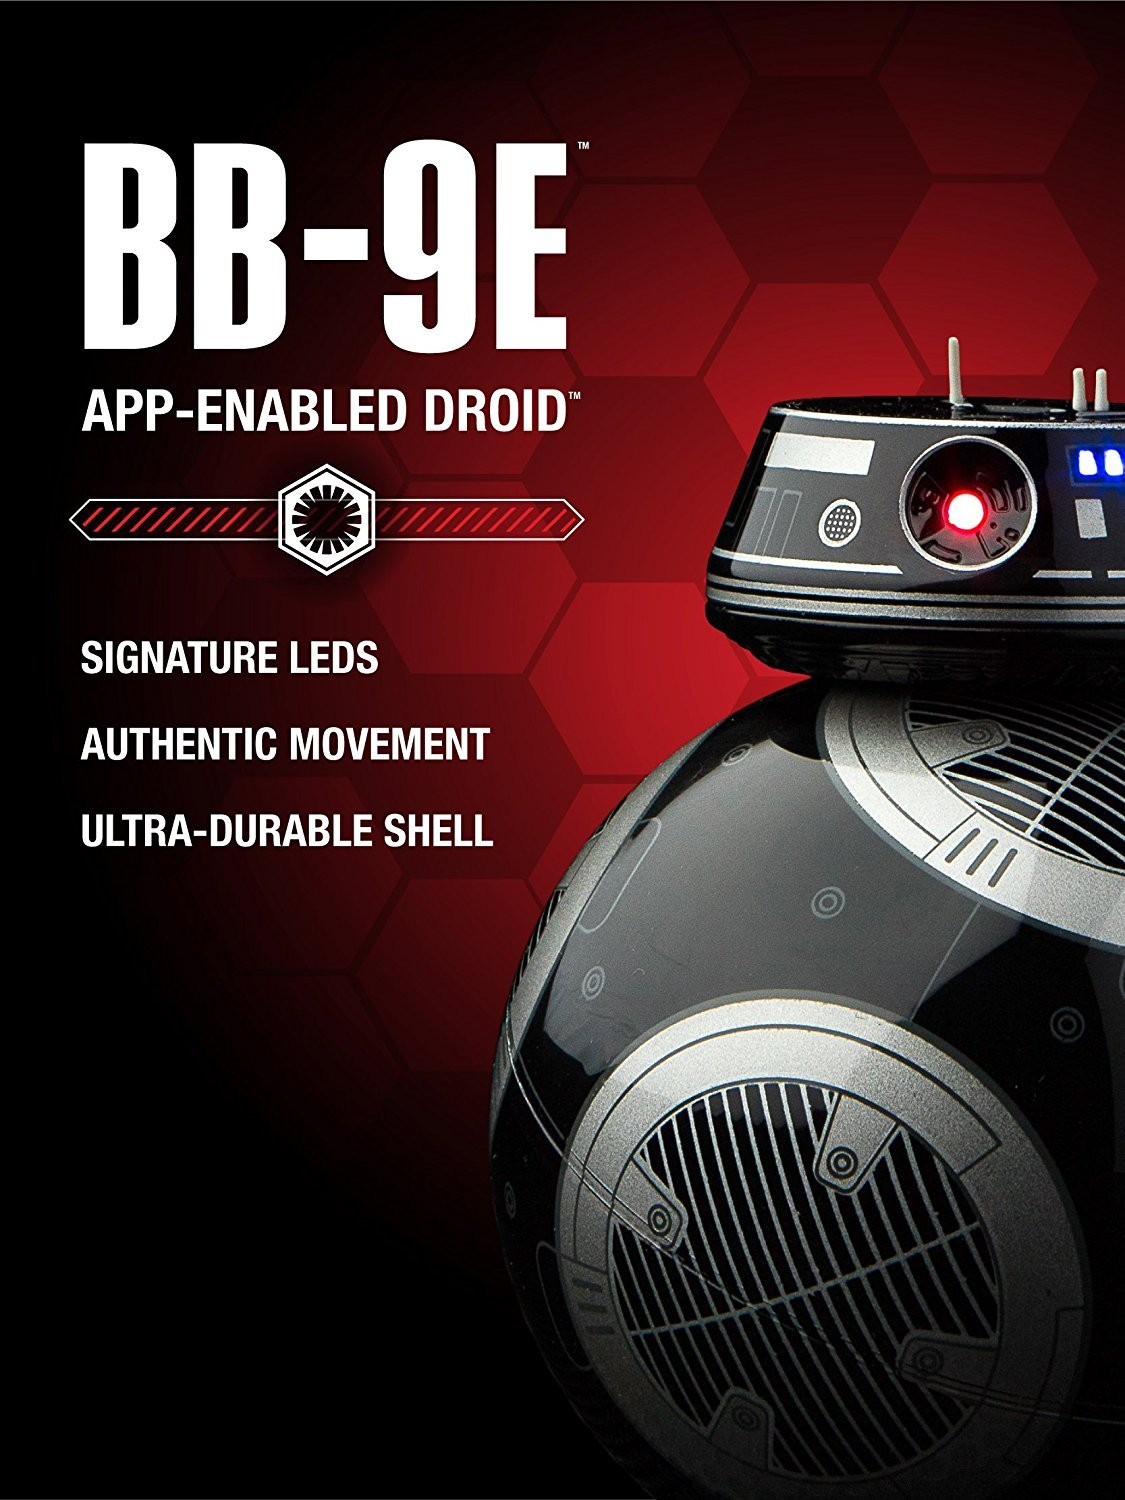 BB-9E App-Enabled Droid with Trainer by Sphero (Image #2)